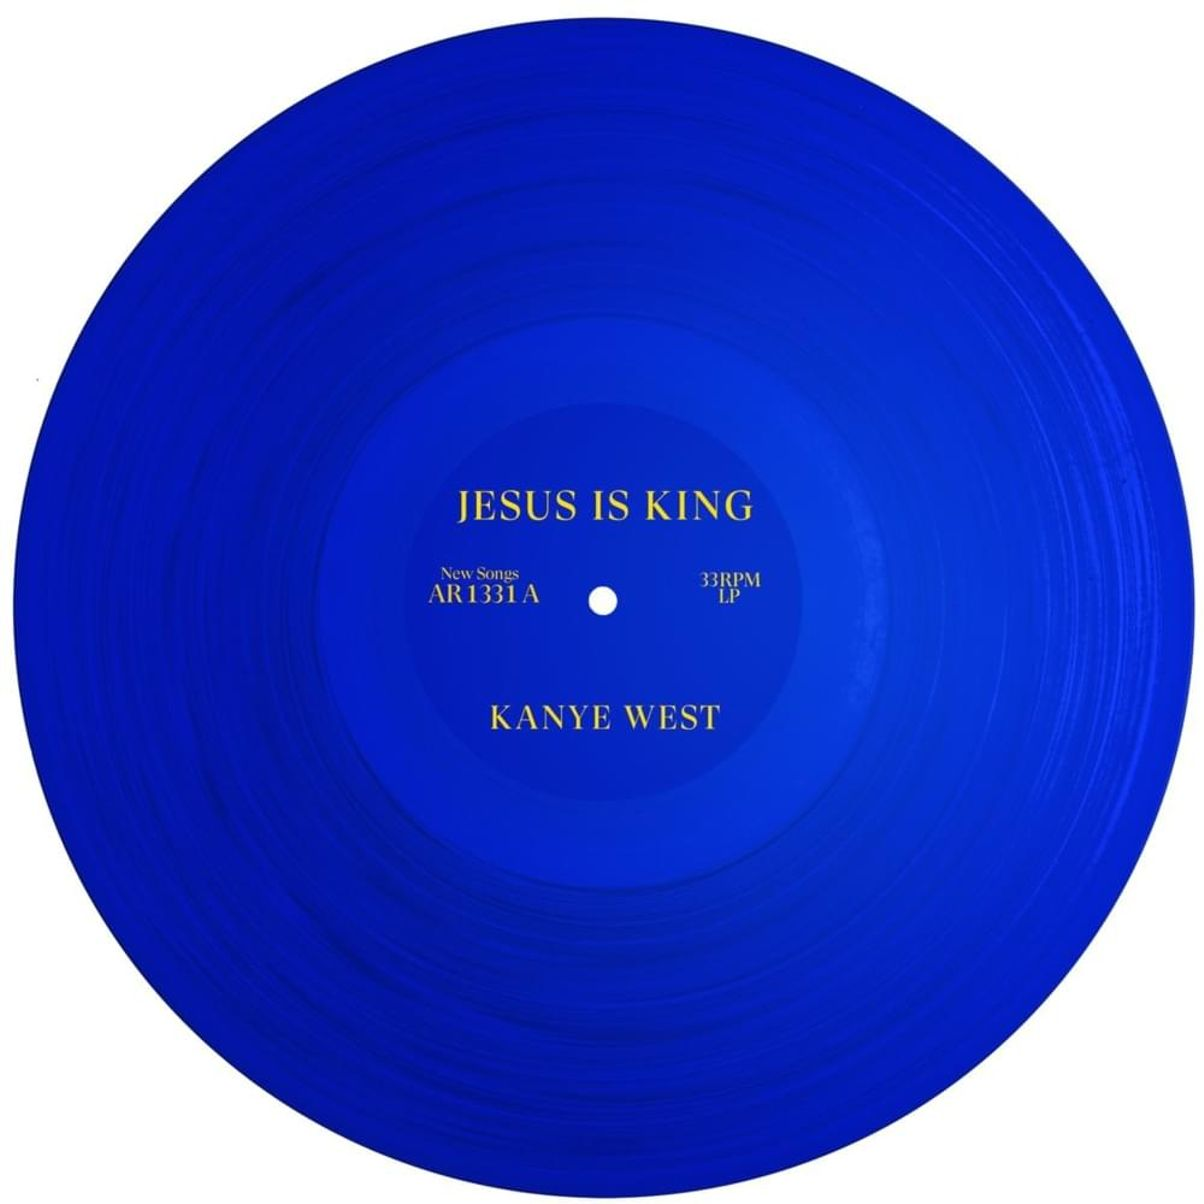 kanye-west-jesus-is-king-album